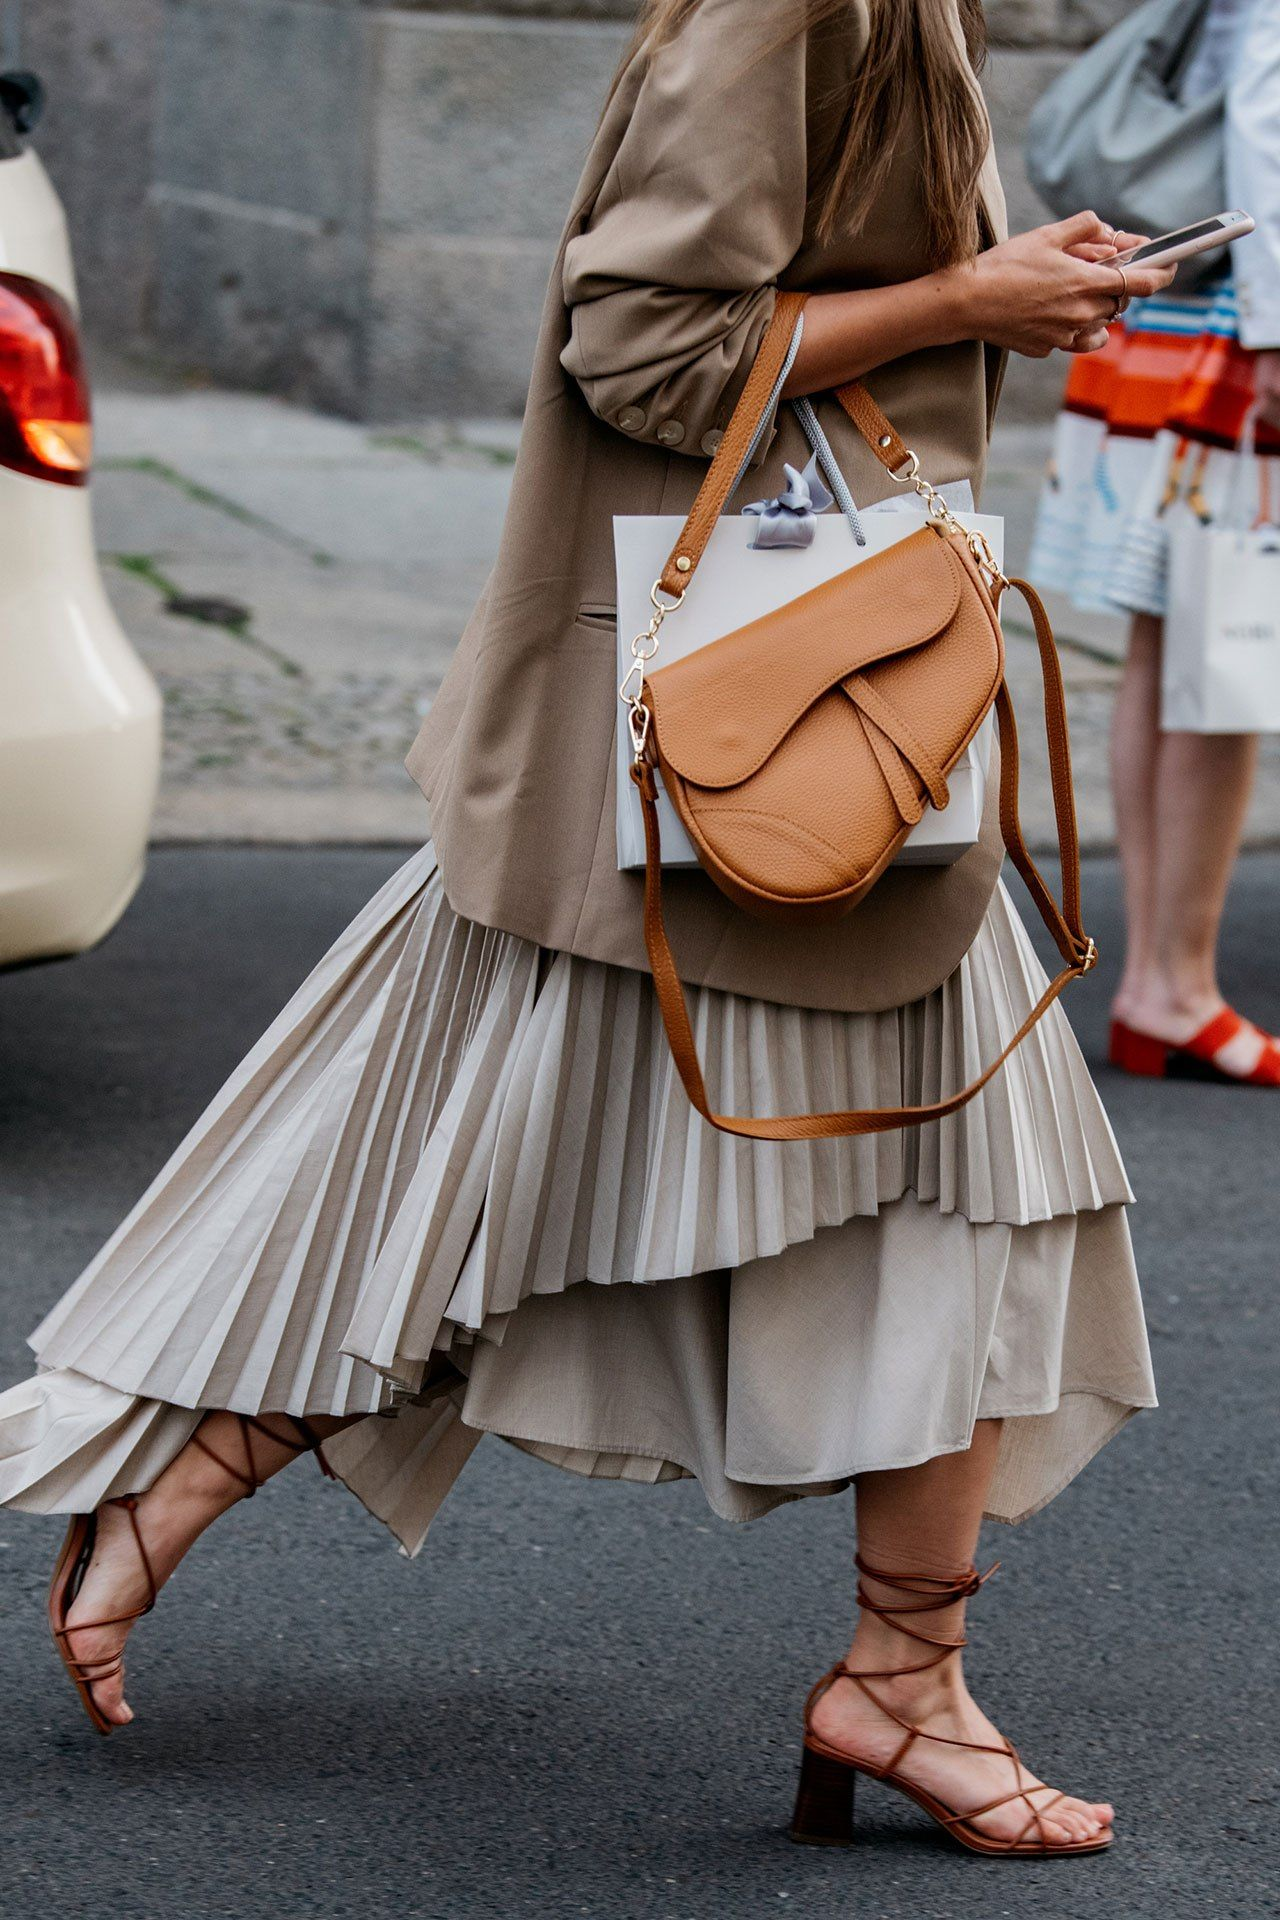 Vogue's guide to styling the high-fashion sandal